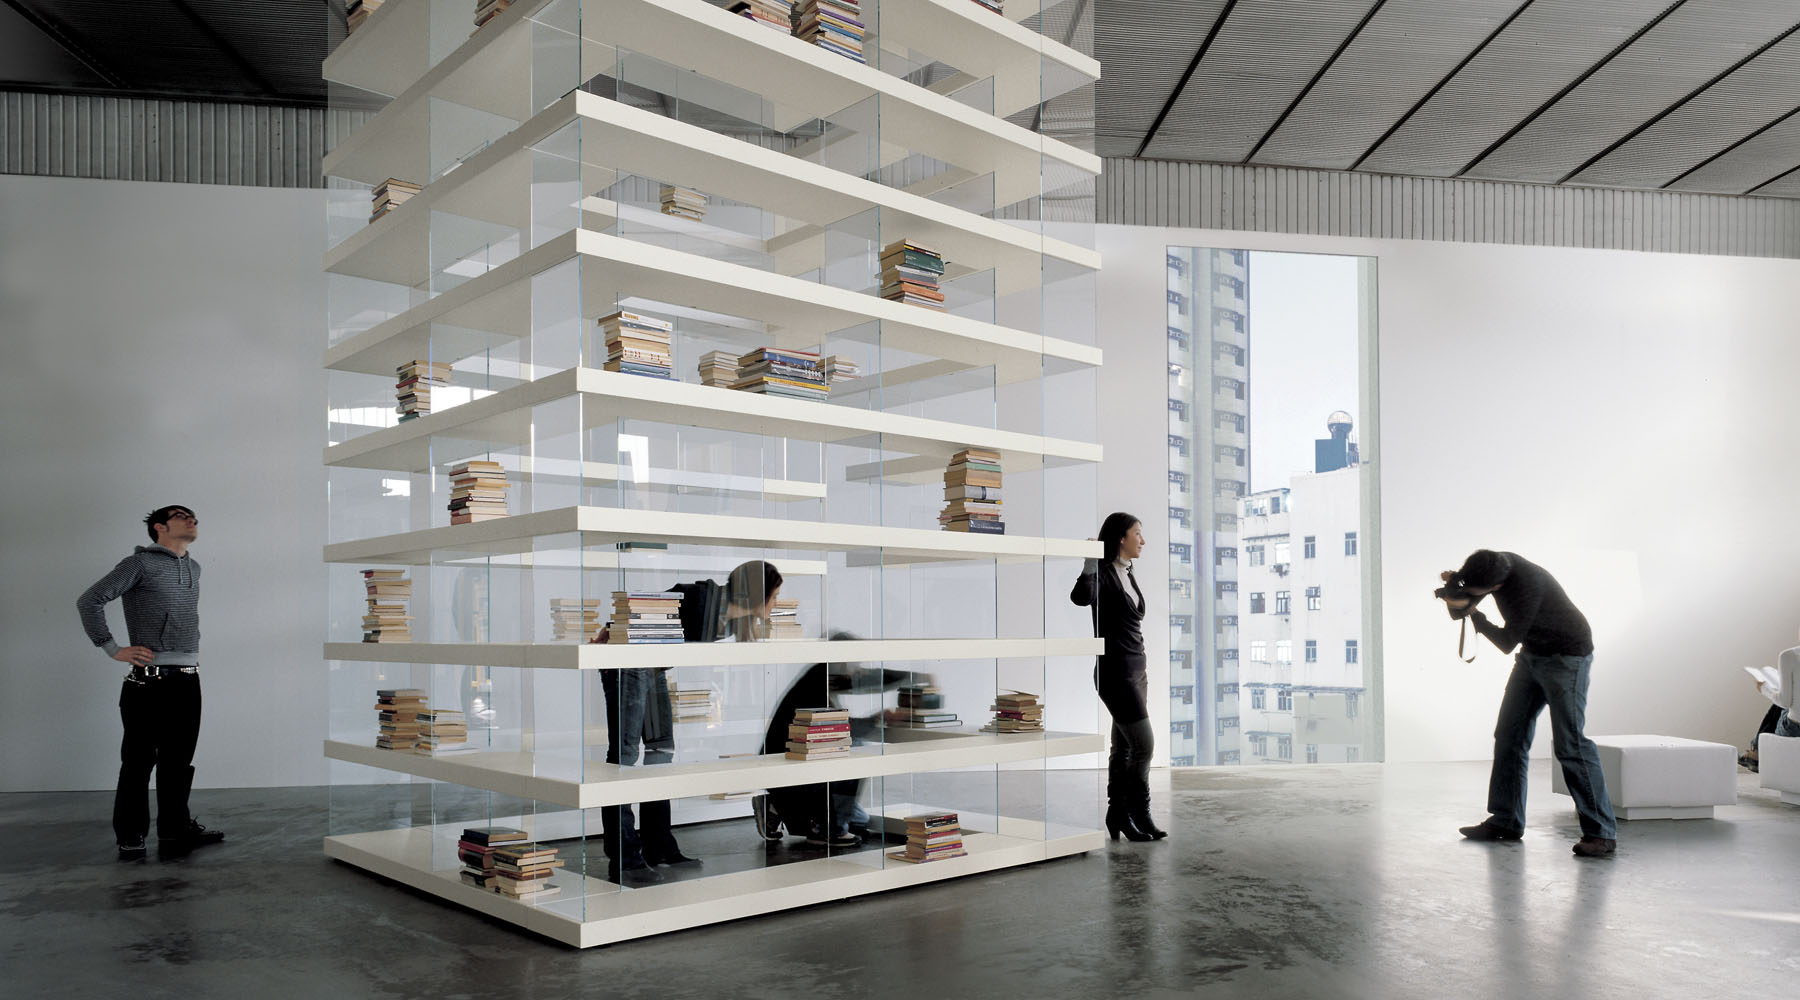 Delfanti arredamenti air shelf storage for Libreria lago air